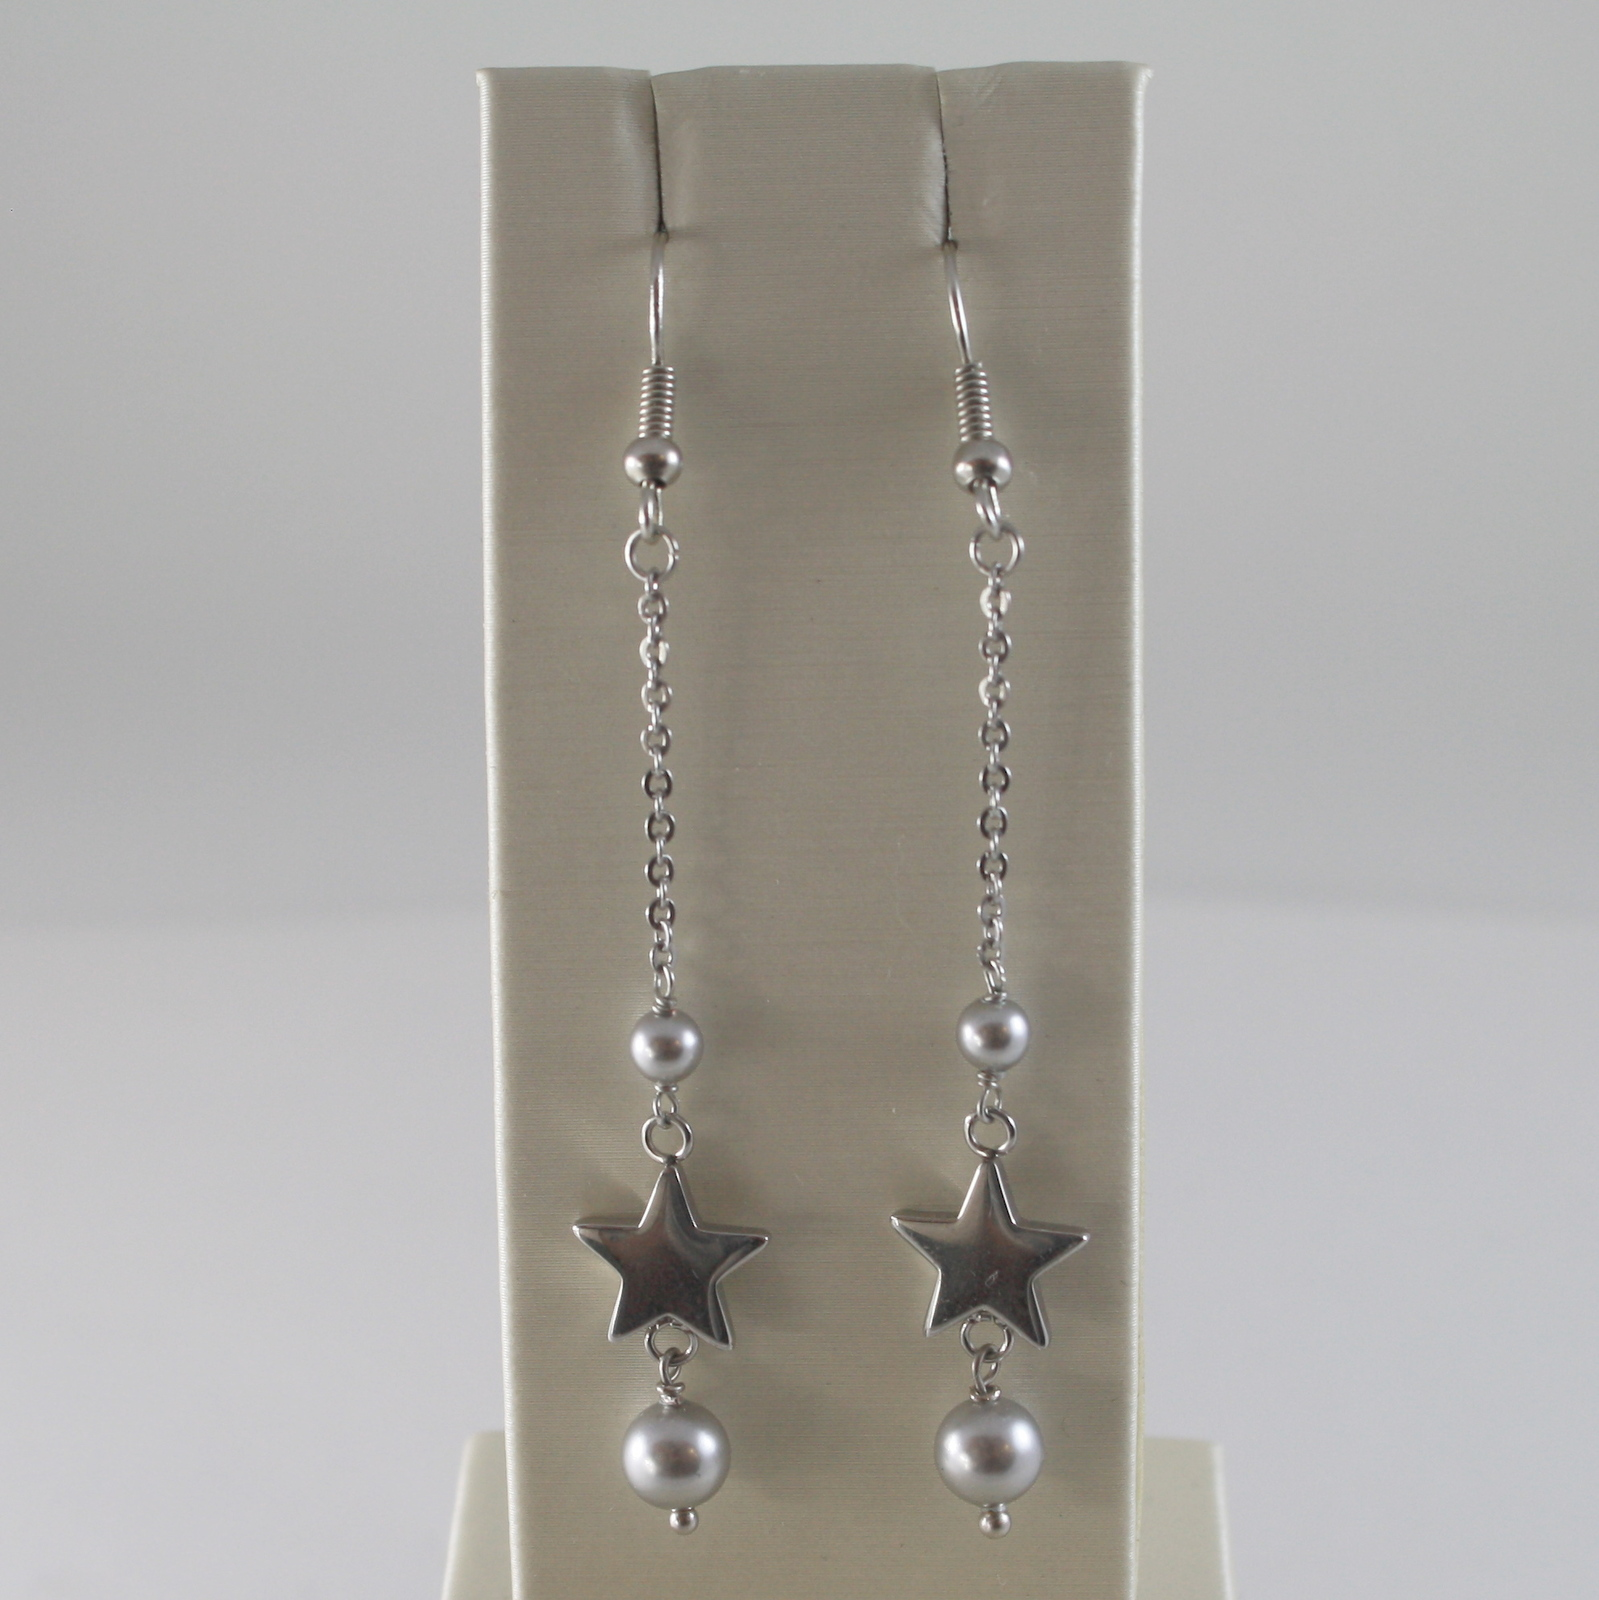 STAINLESS STEEL HOOK EARRINGS WITH GREY PEARLS AND STAR CHARMS, 2.75 IN LONG